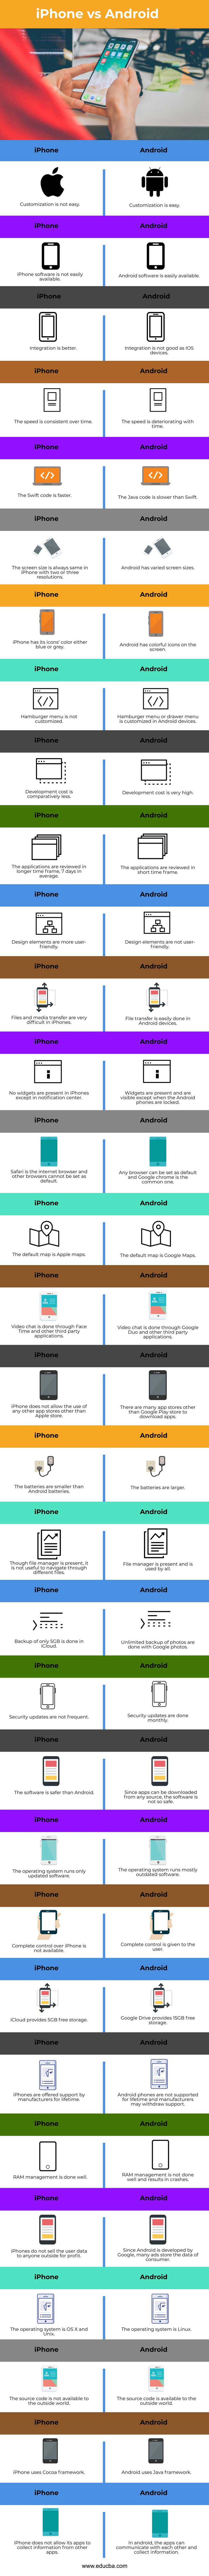 iPhone vs Android info